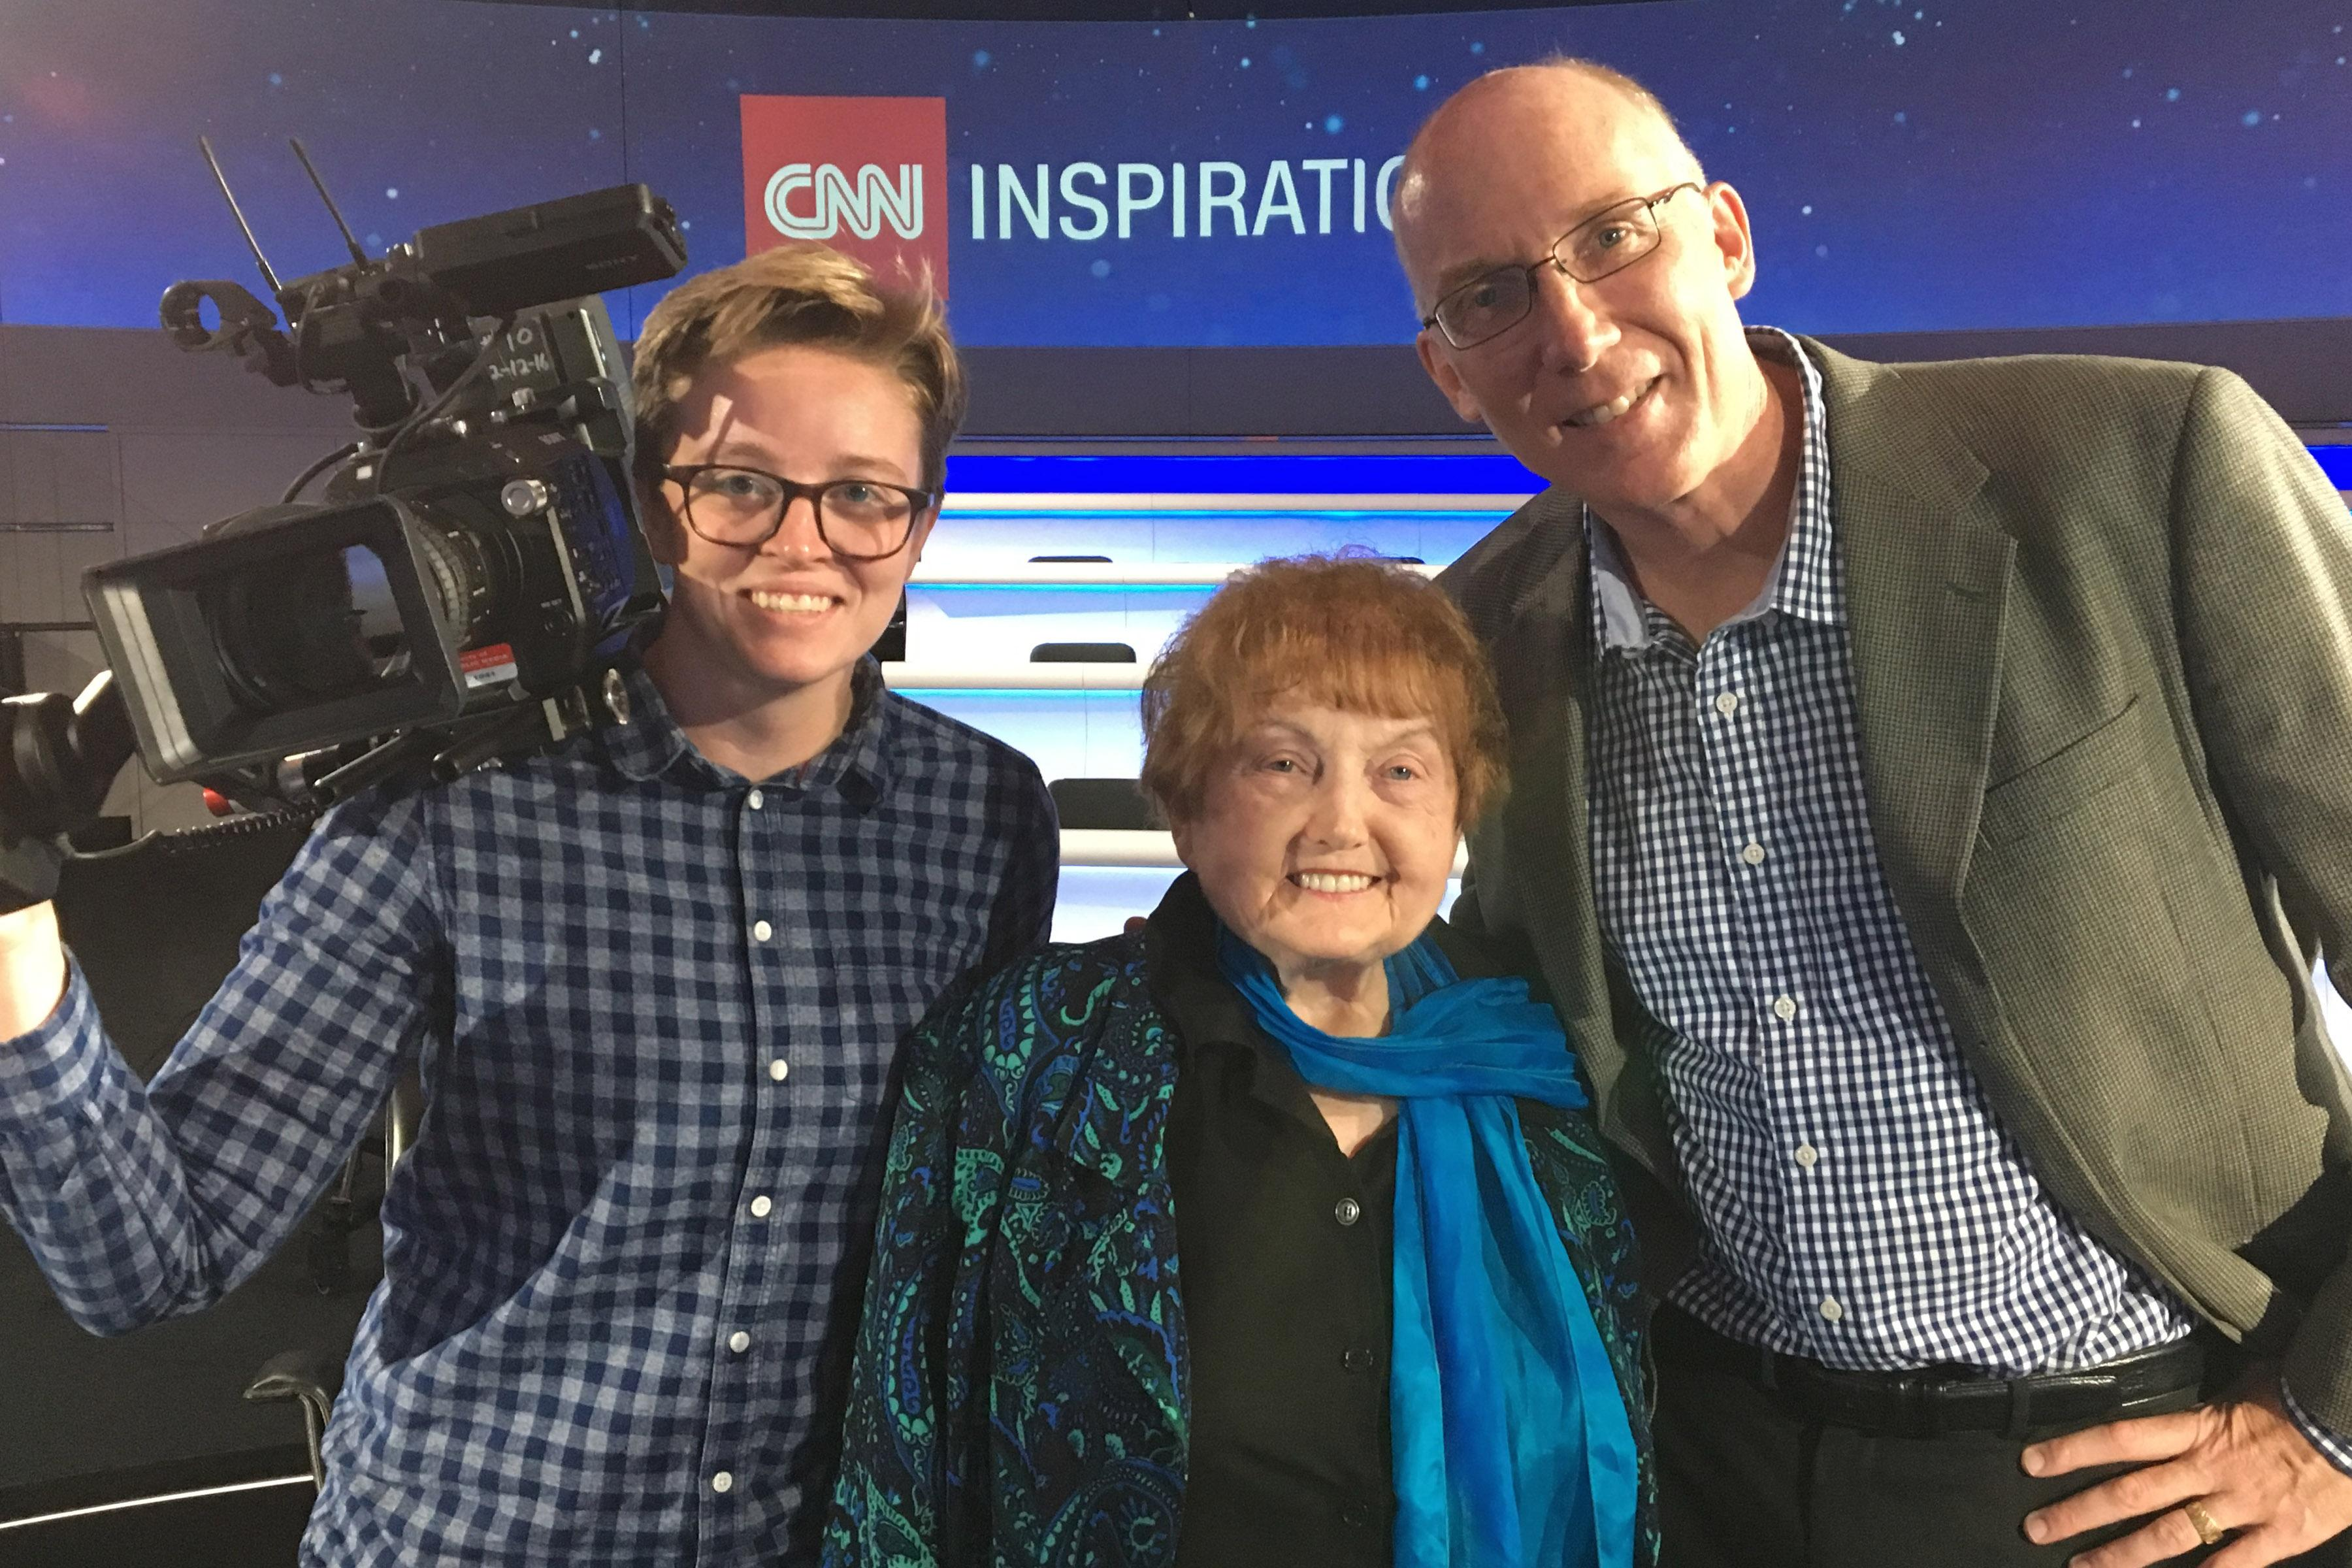 Ted Green, Mika Brown, and Eva Kor at the CNN London studio.